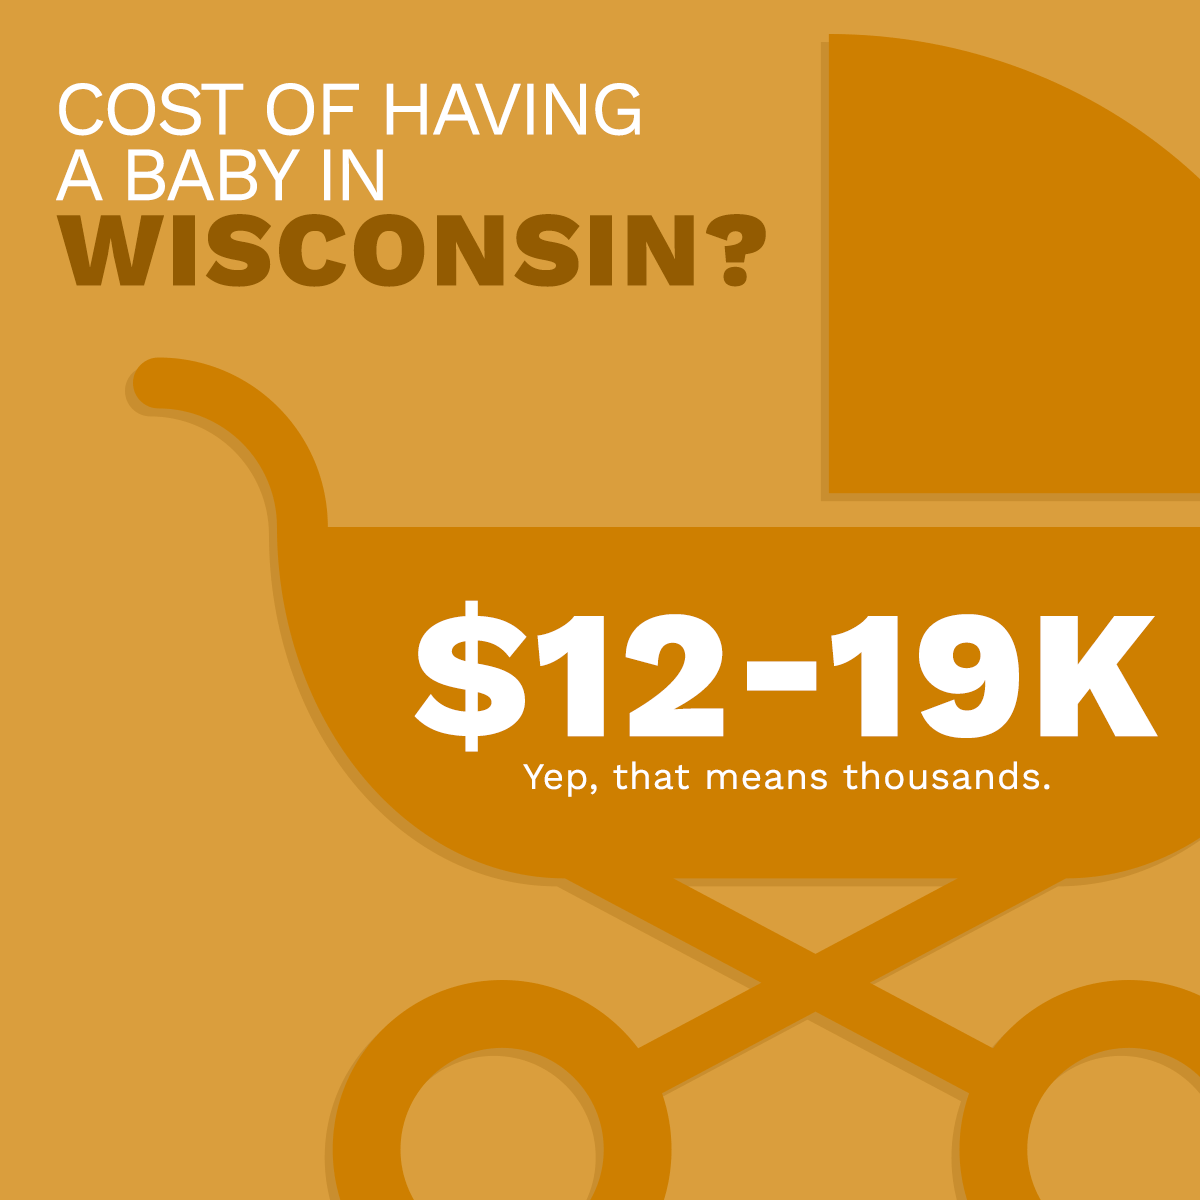 cost of having a baby in wisconsin